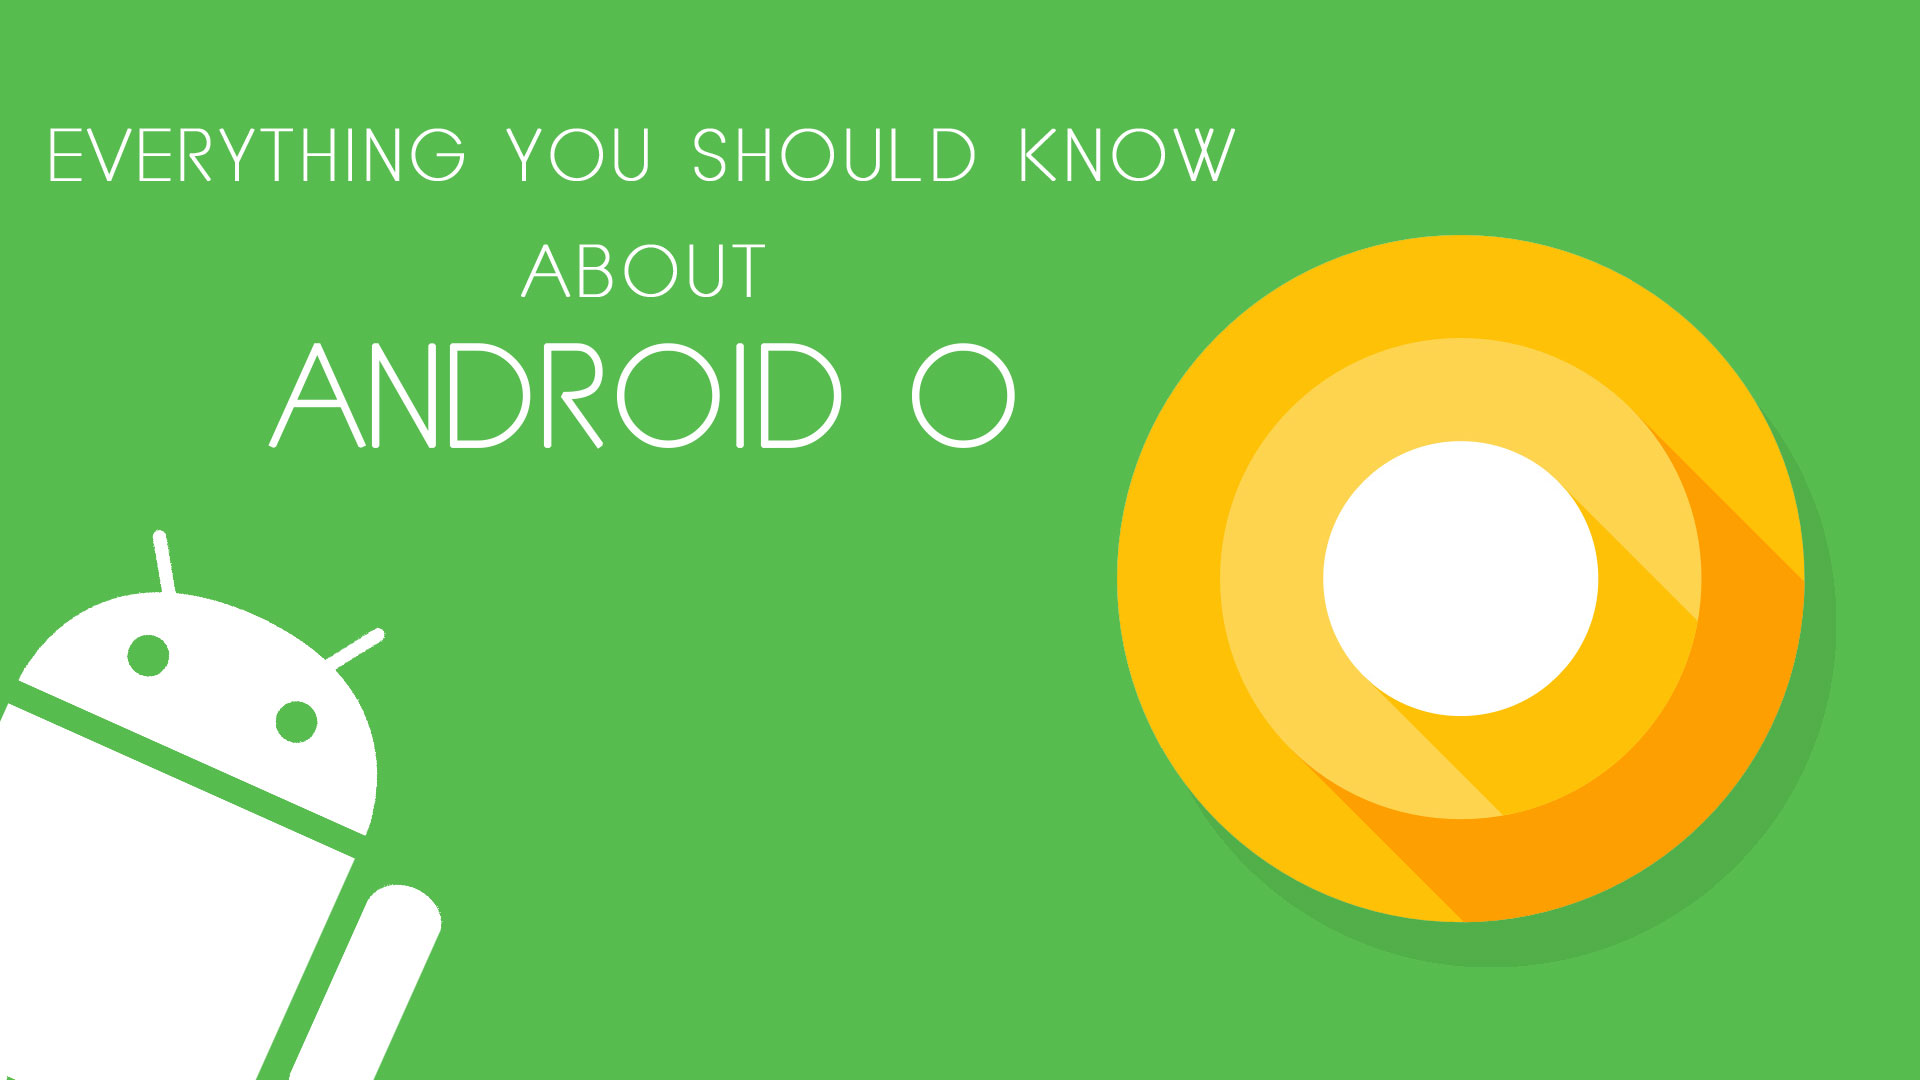 Android O Image